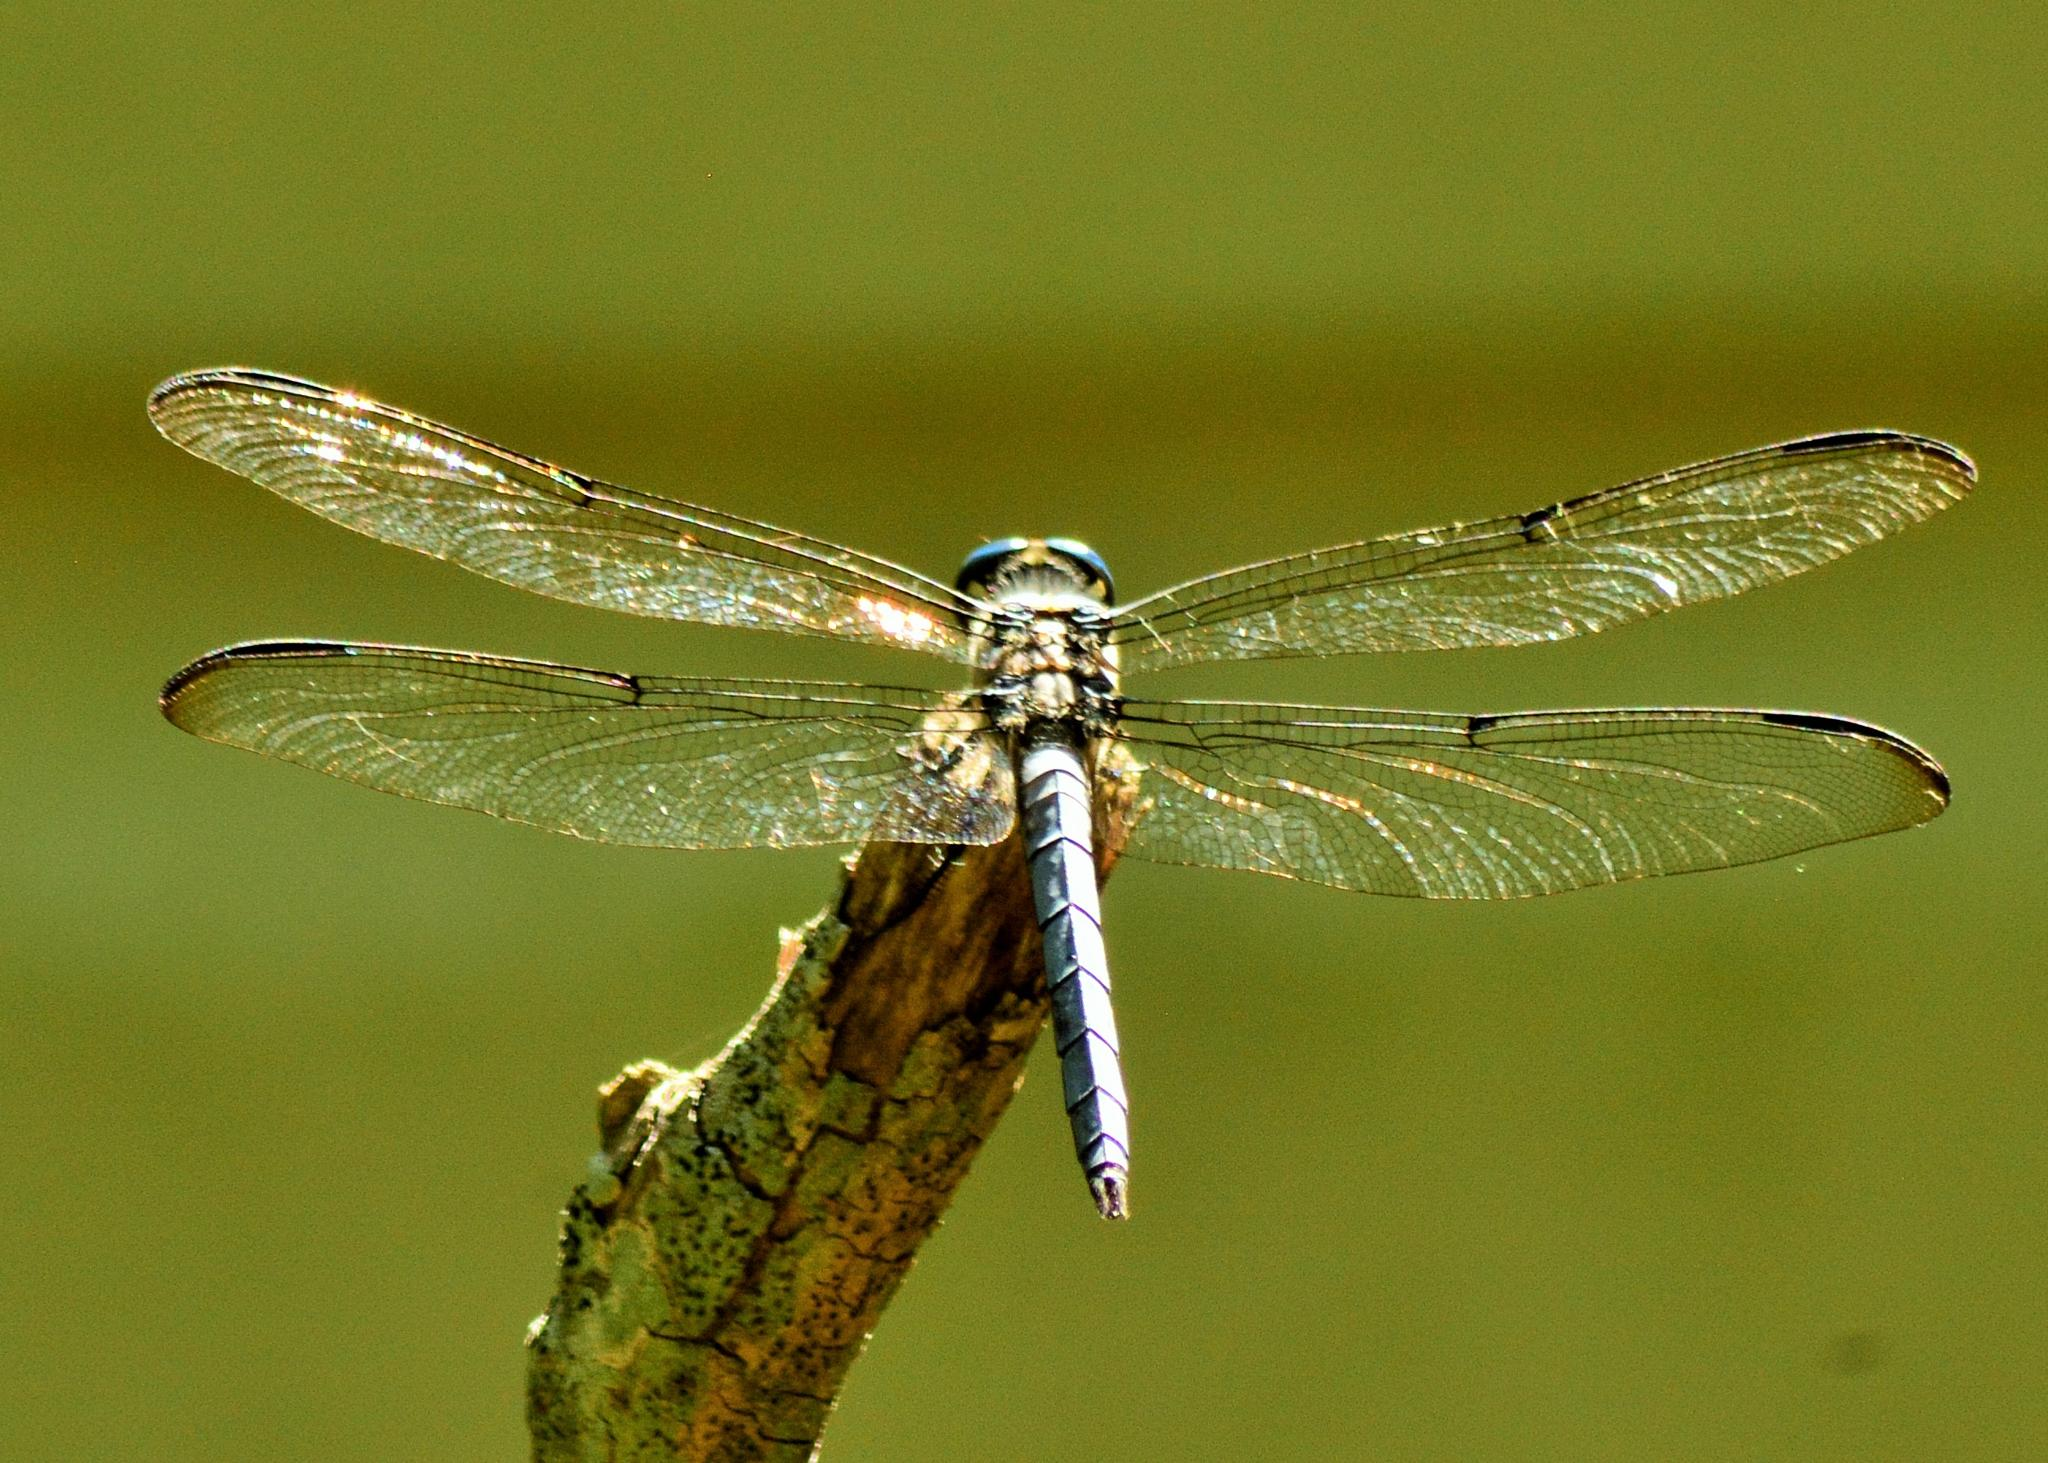 Dragonfly shining in the sun by Kathy